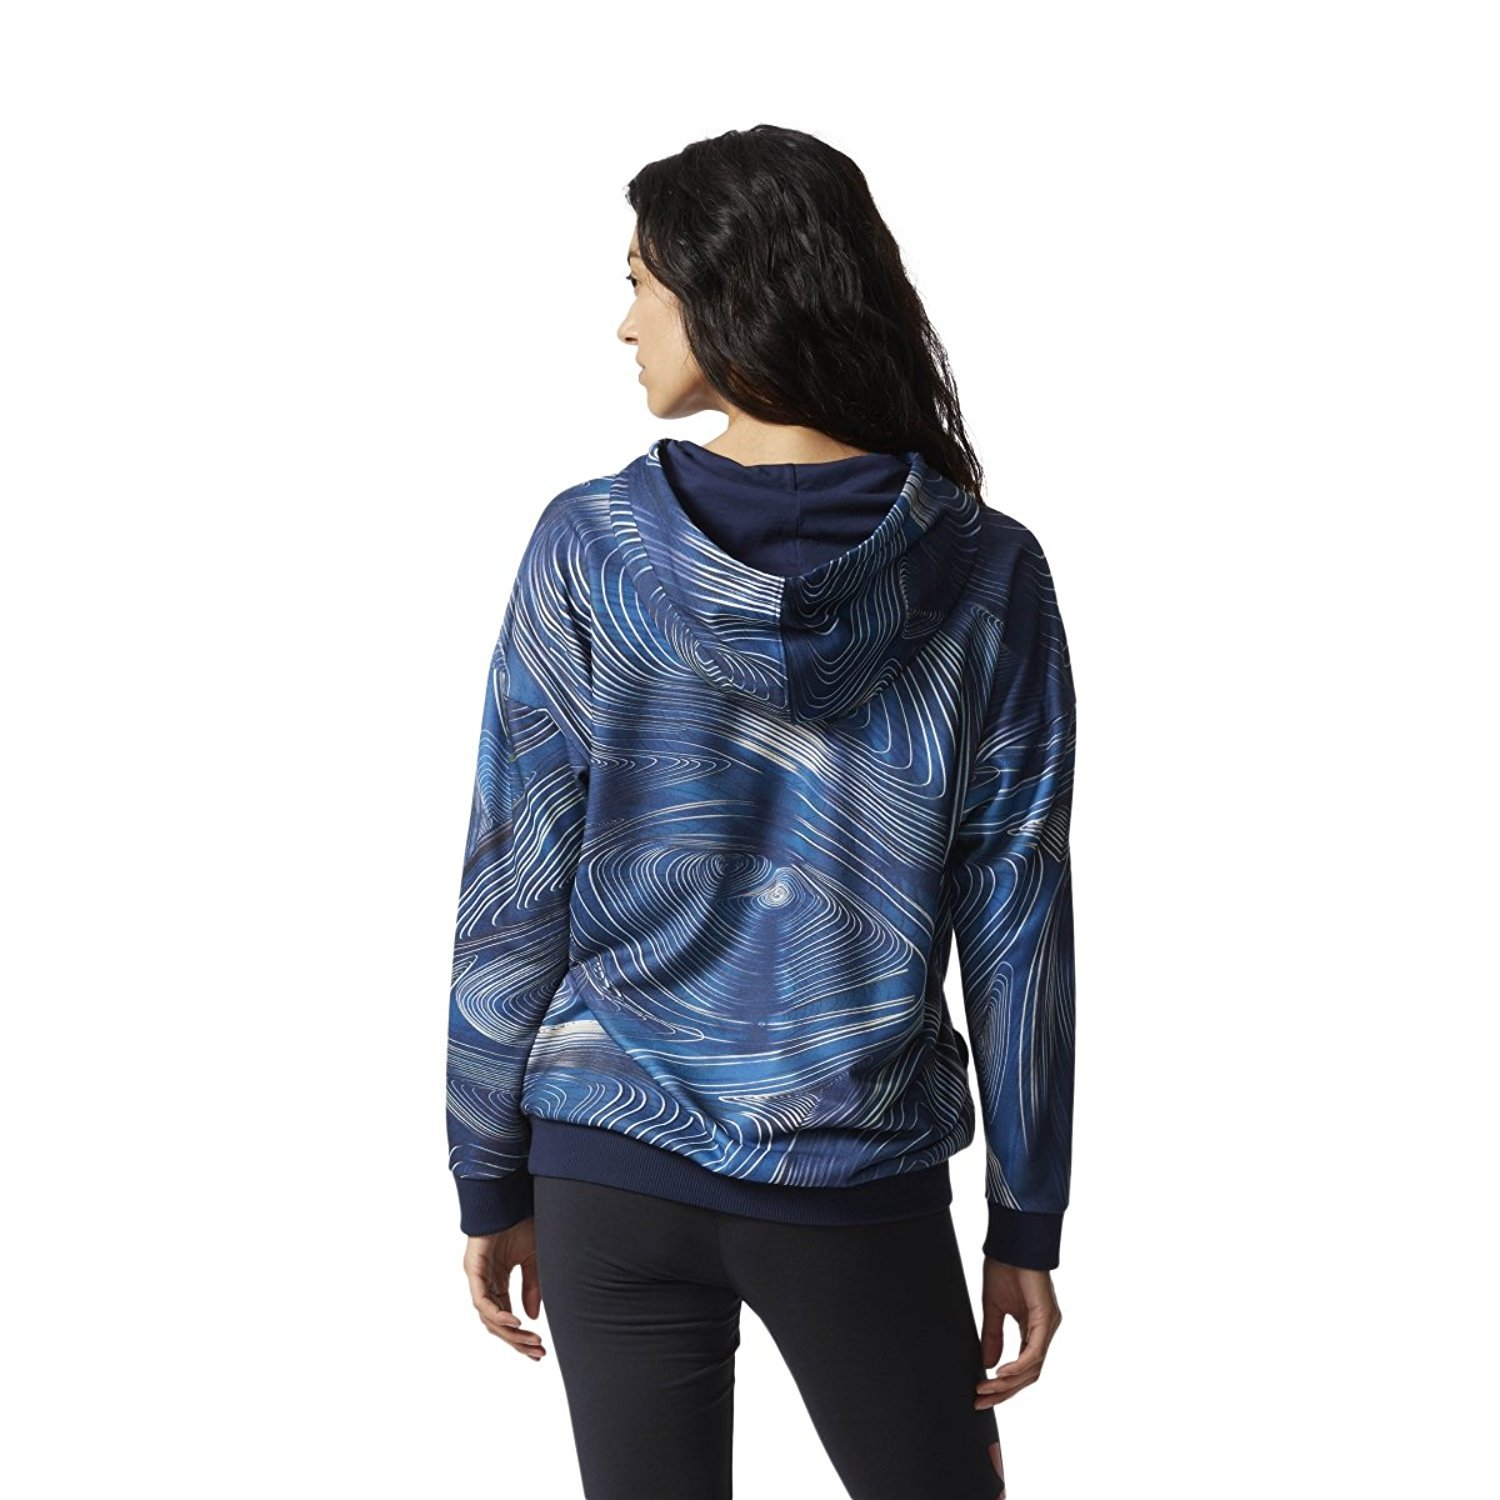 bd5c6b27809203 Amazon.com: adidas Women Originals Blue Geology Oversize Hoodie #BQ1010  (XS): Sports & Outdoors